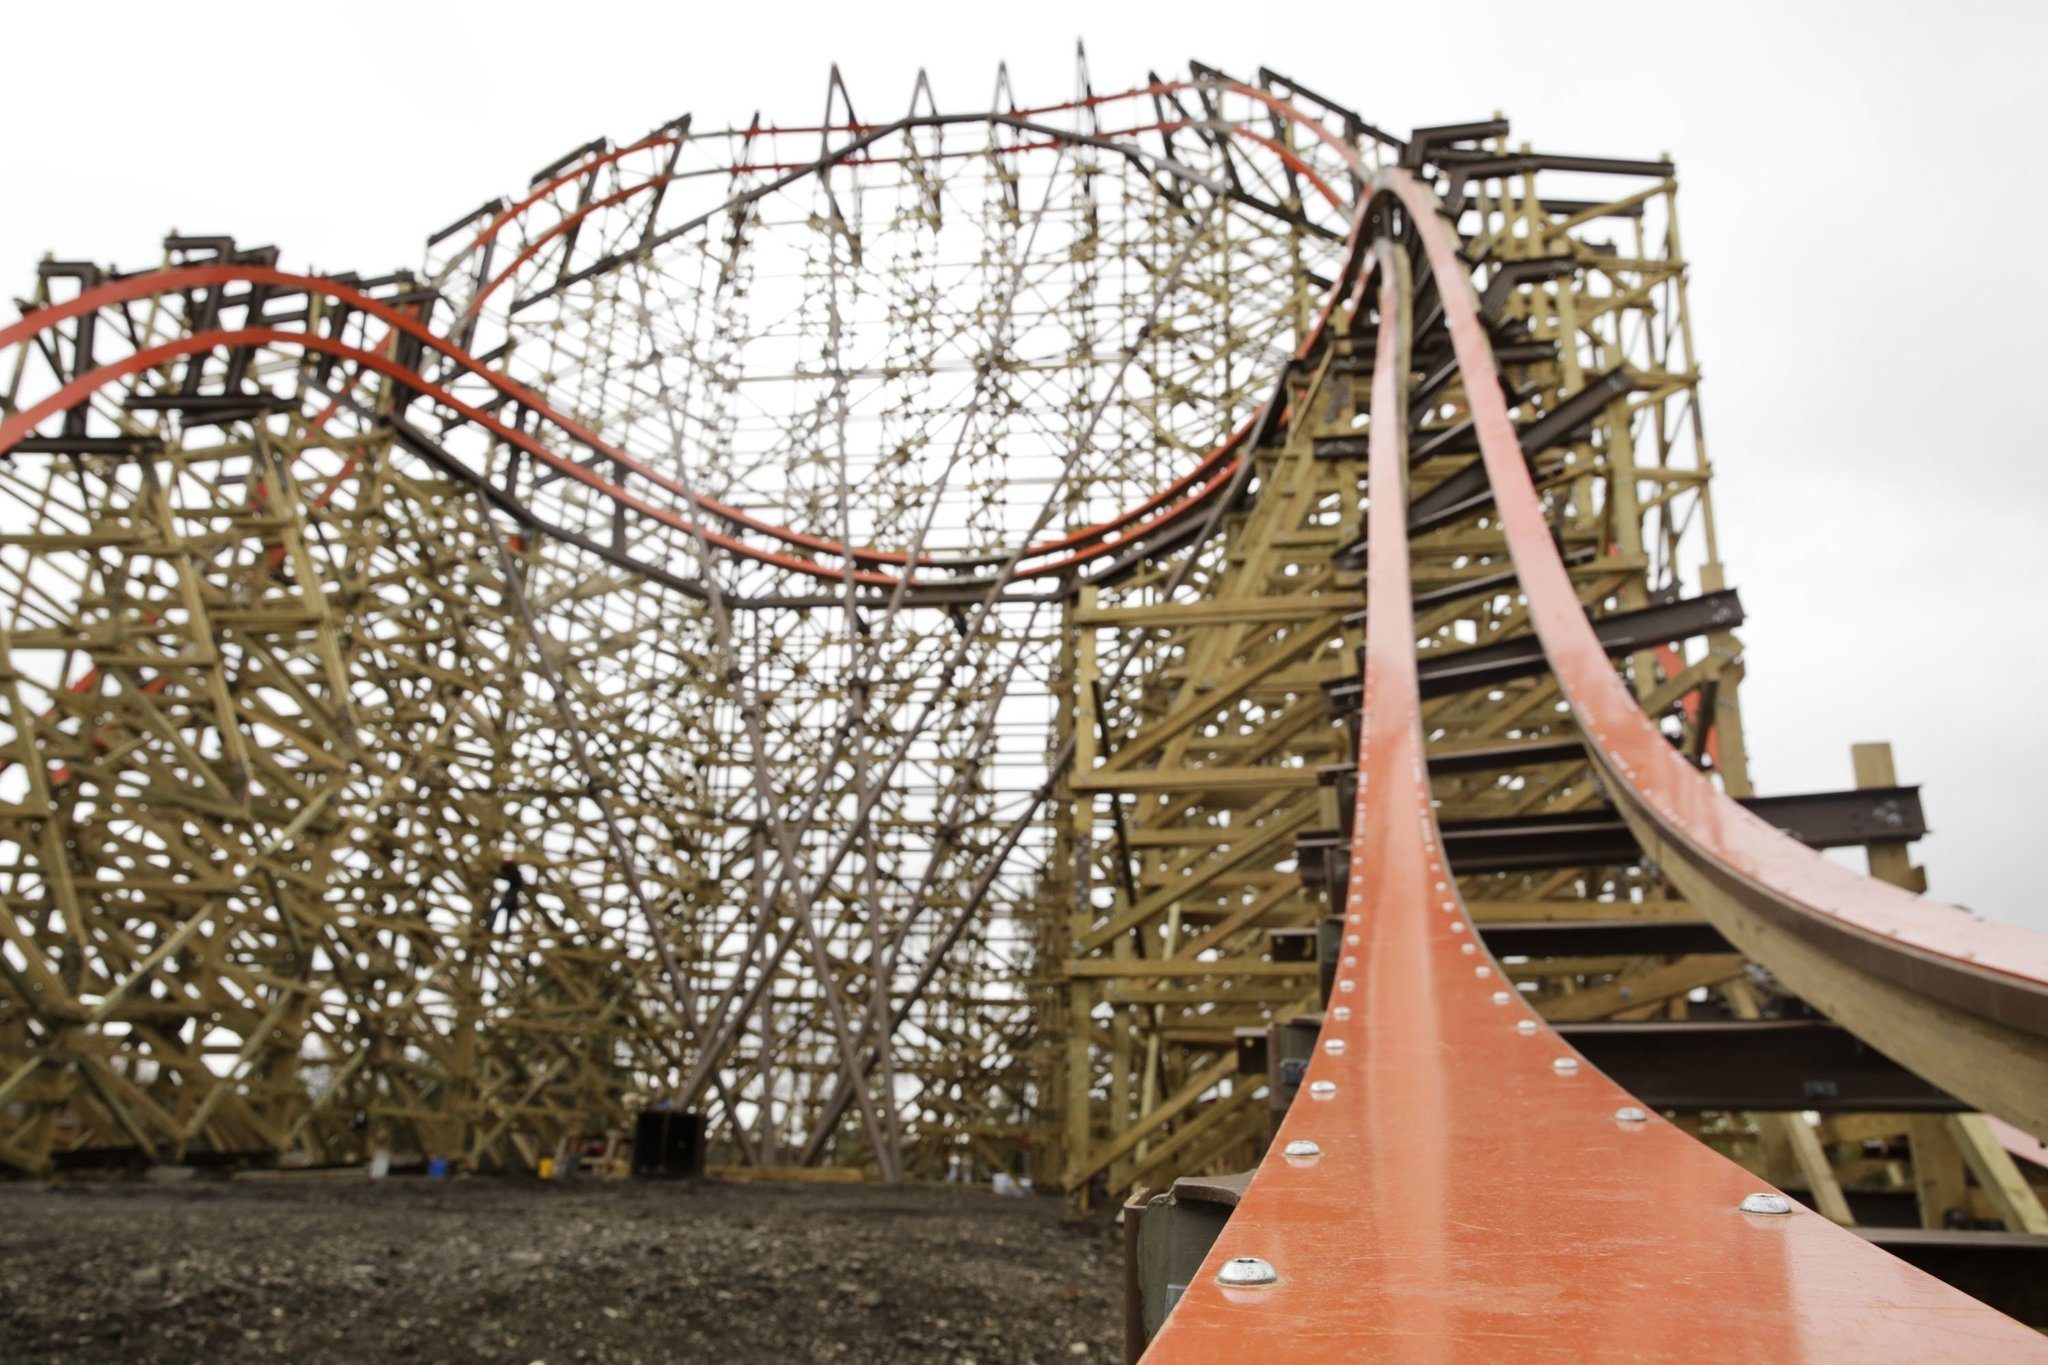 New Goliath coaster at Six Flags a physics lesson - chicagotribune.com